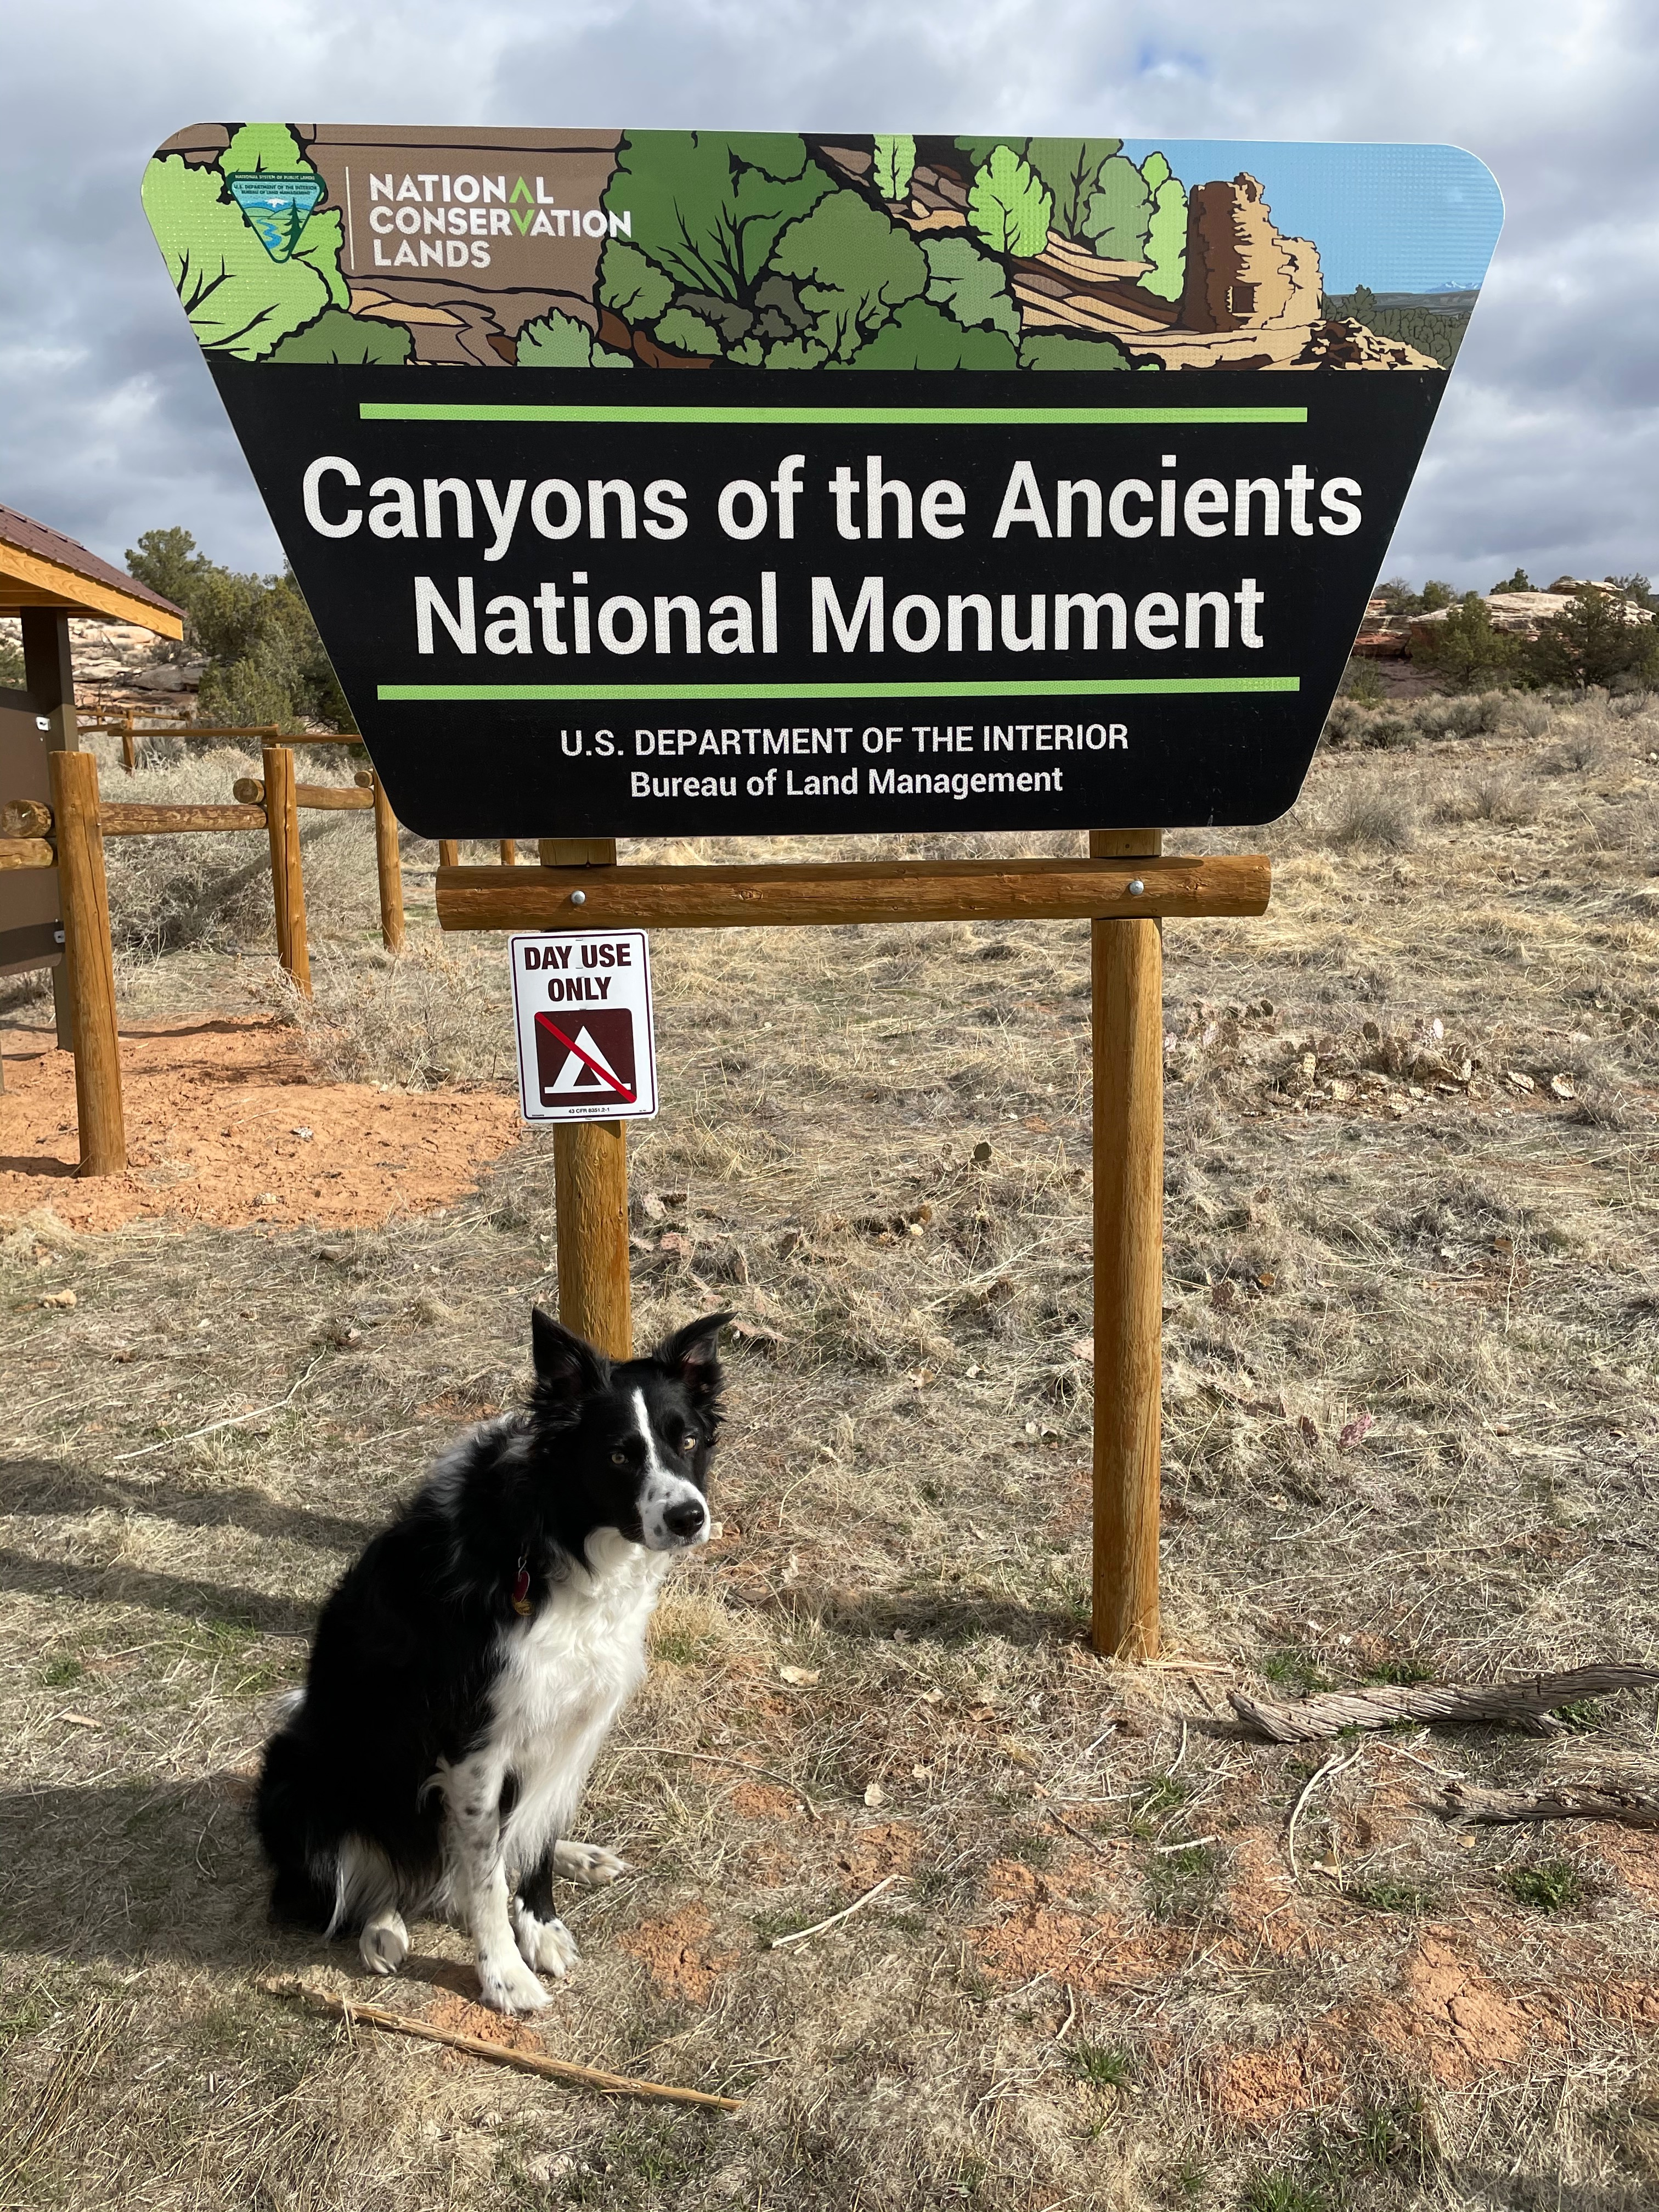 Canyons of the Ancients National Monument felt like a hidden gem. I've been to Mesa Verde before, which is cool, but it's always crowded. There was almost nobody at this monument.